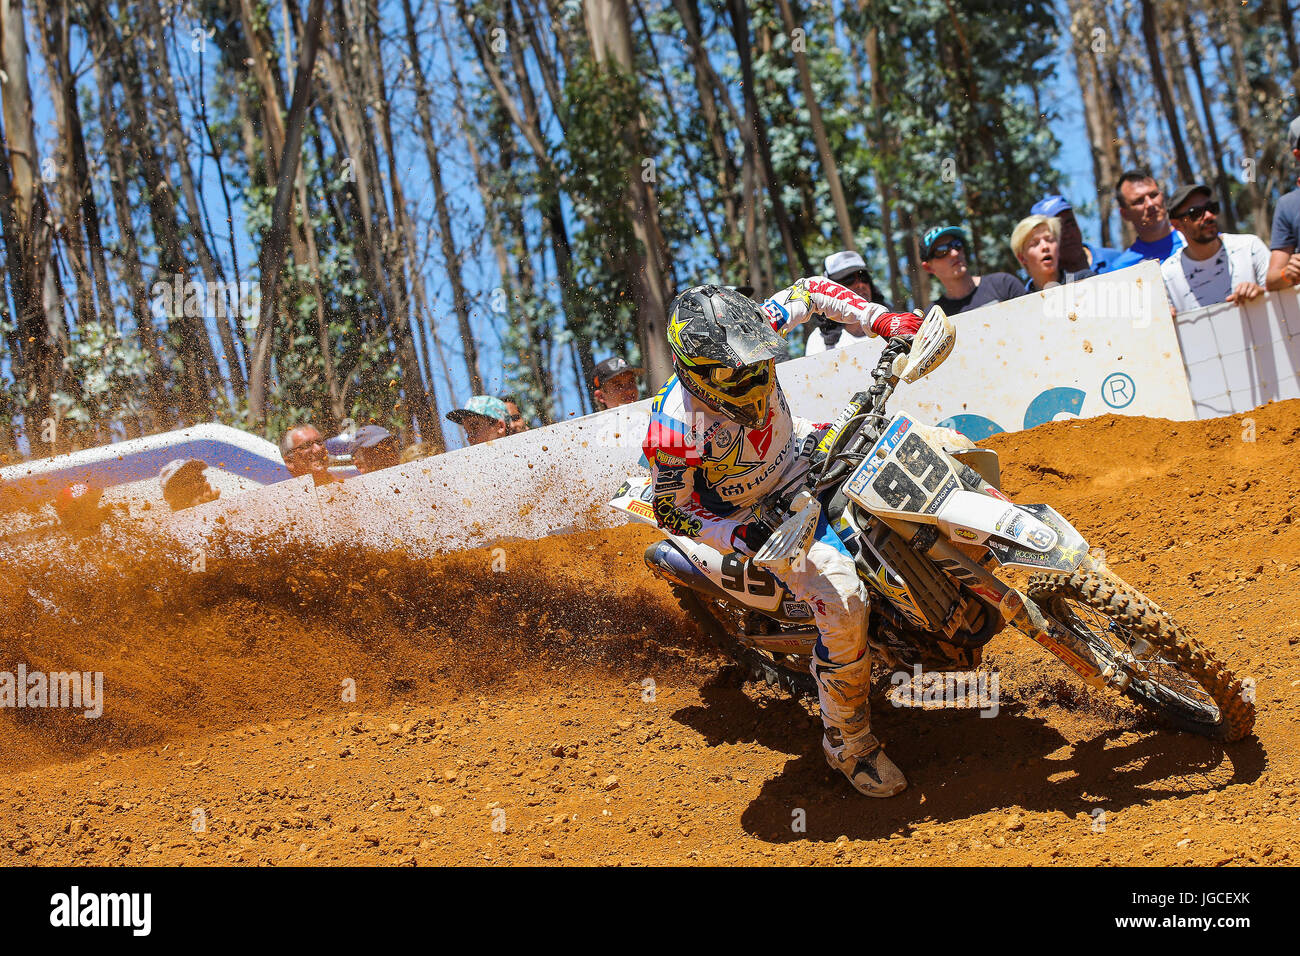 Max Anstie #99 (GBR) in Husqvarna of Rockstar Energy Husqvarna Factory Racing in action during the MXGP World Championship - Stock Image